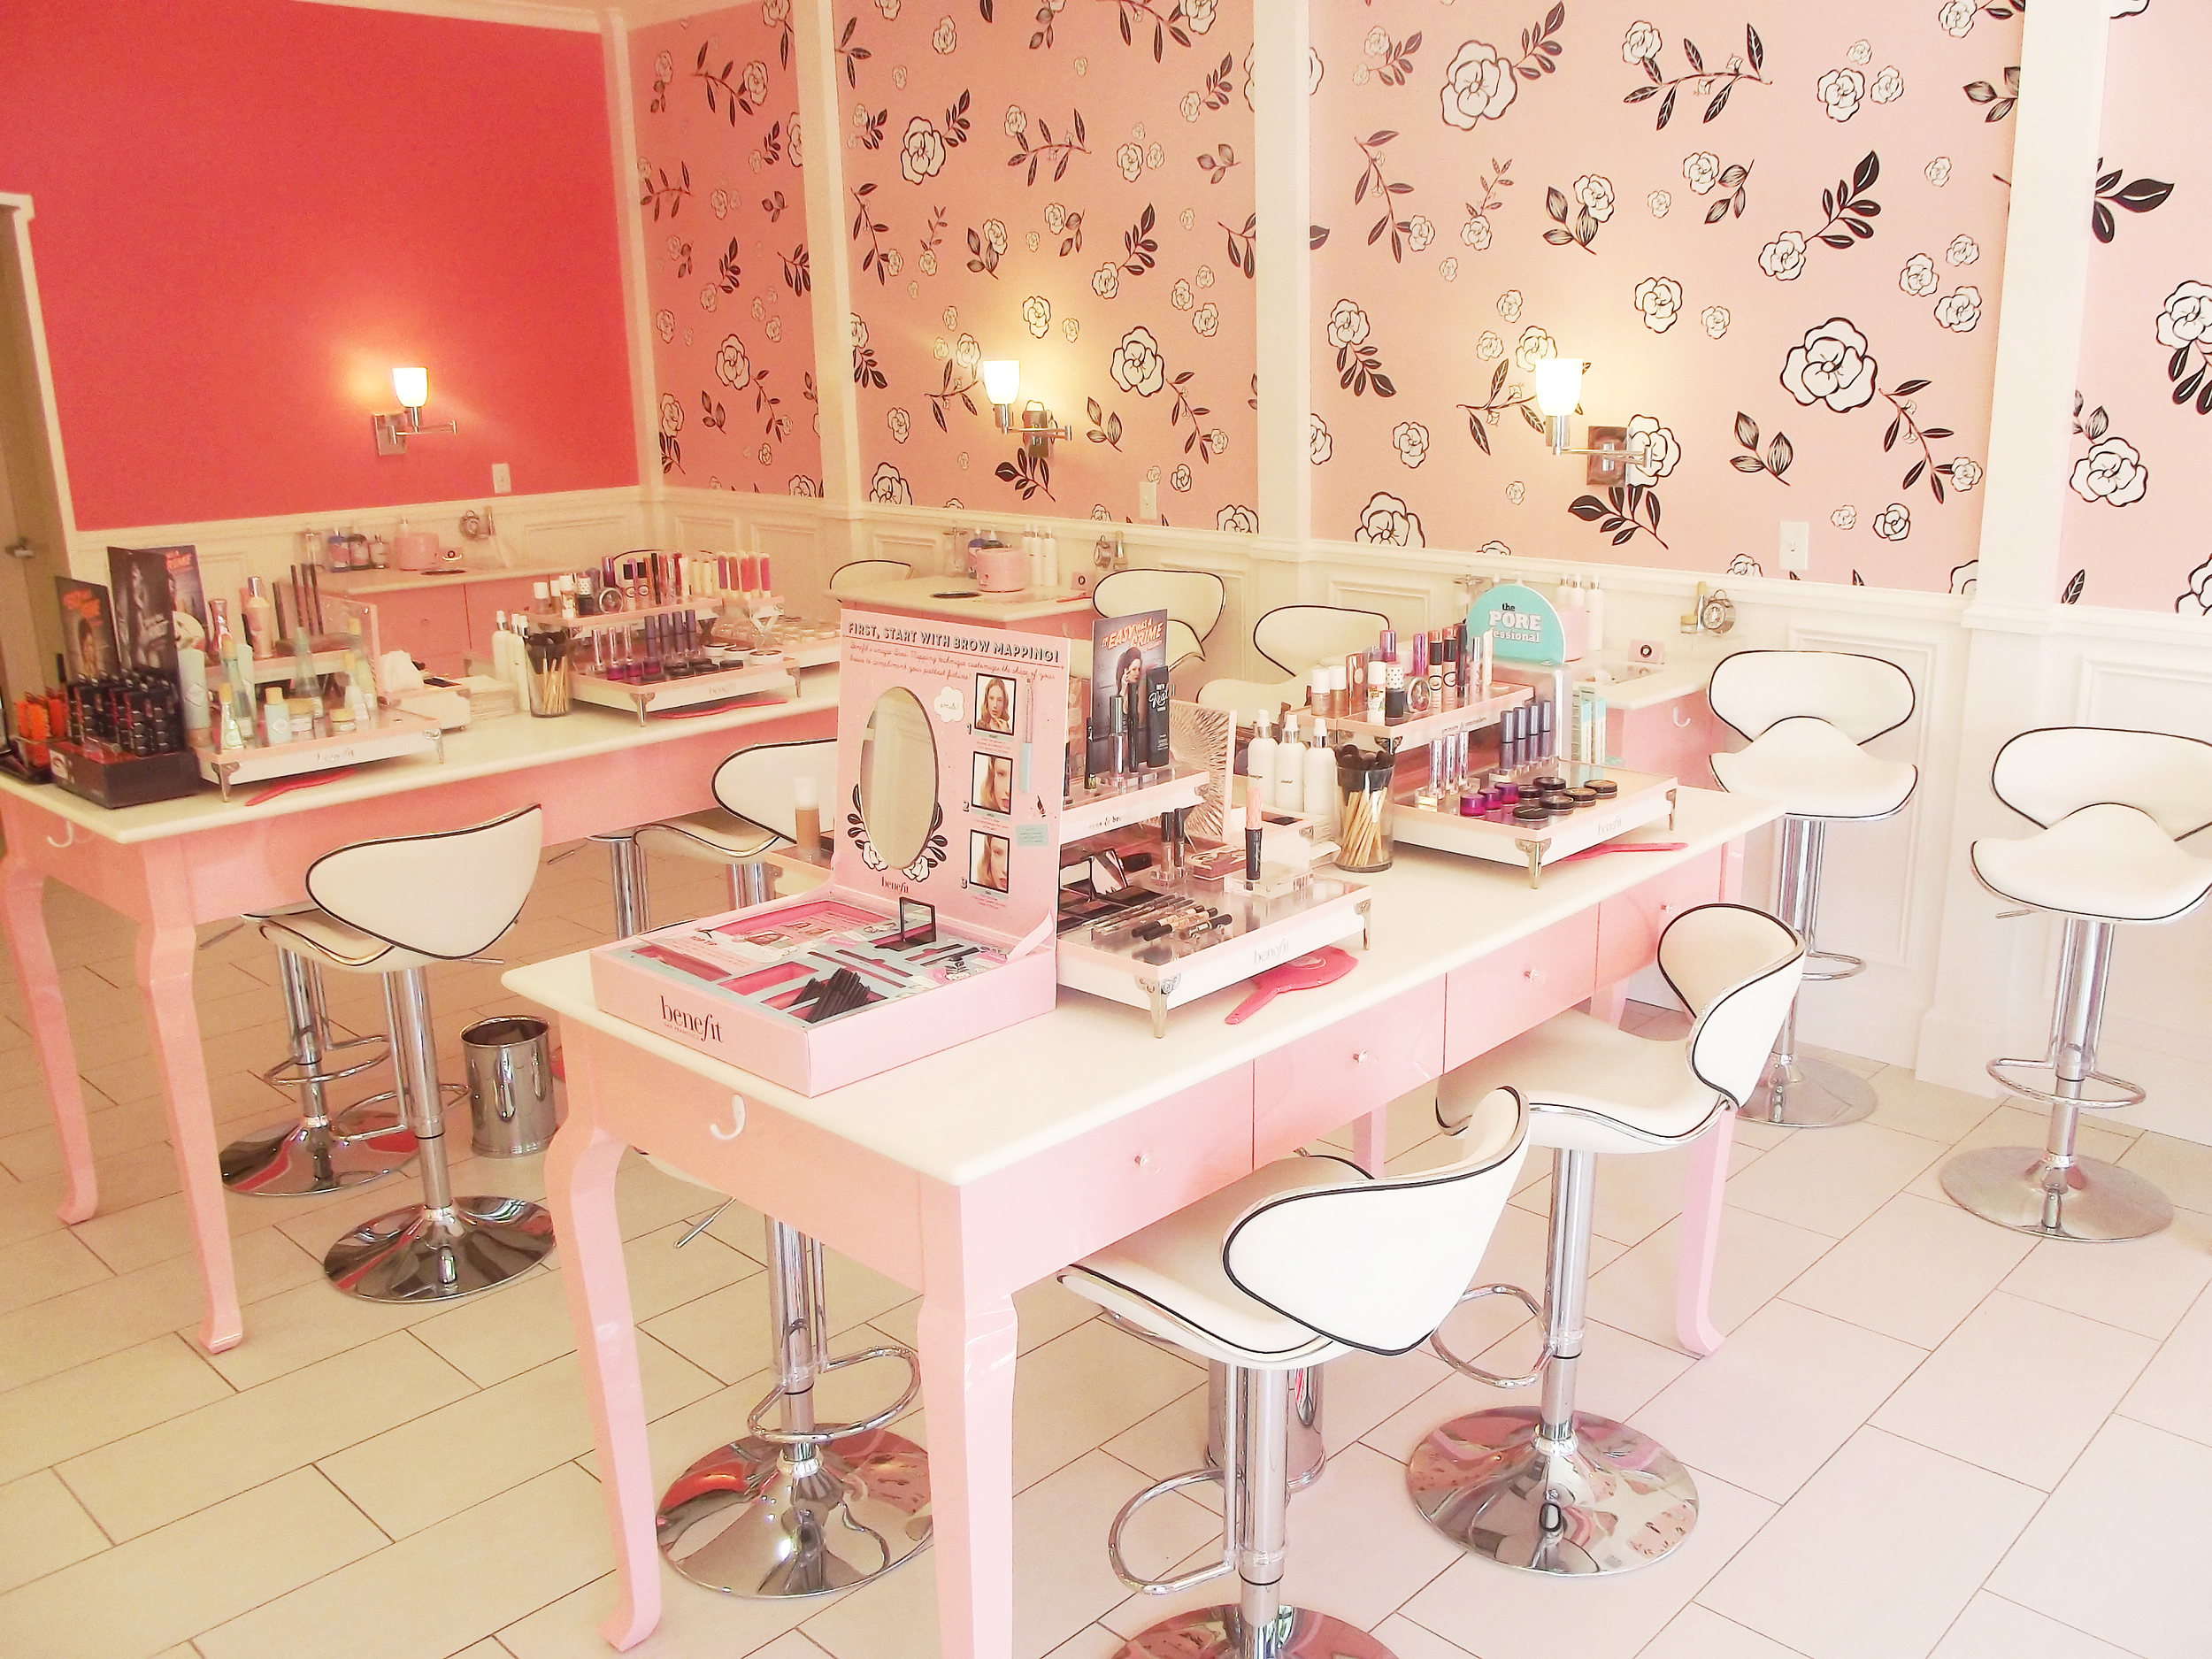 This is overview of the boutique. There are stations set up all over the store for different services offered and different product types!